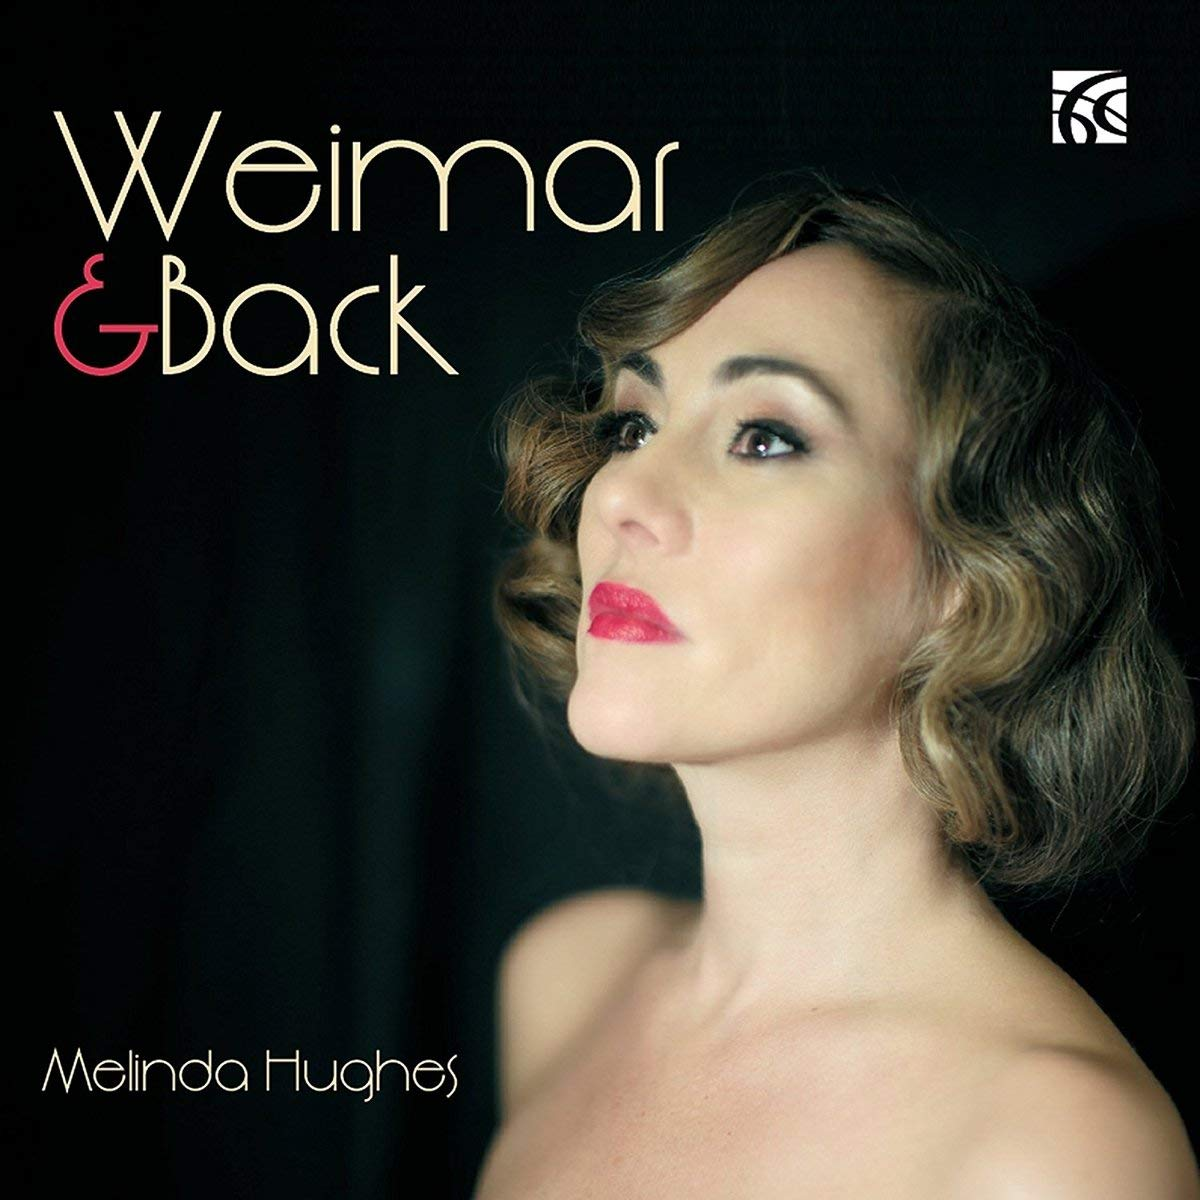 The cabaret tradition: Melinda Hughes, Jeremy Limb & friends in Weimar and Back